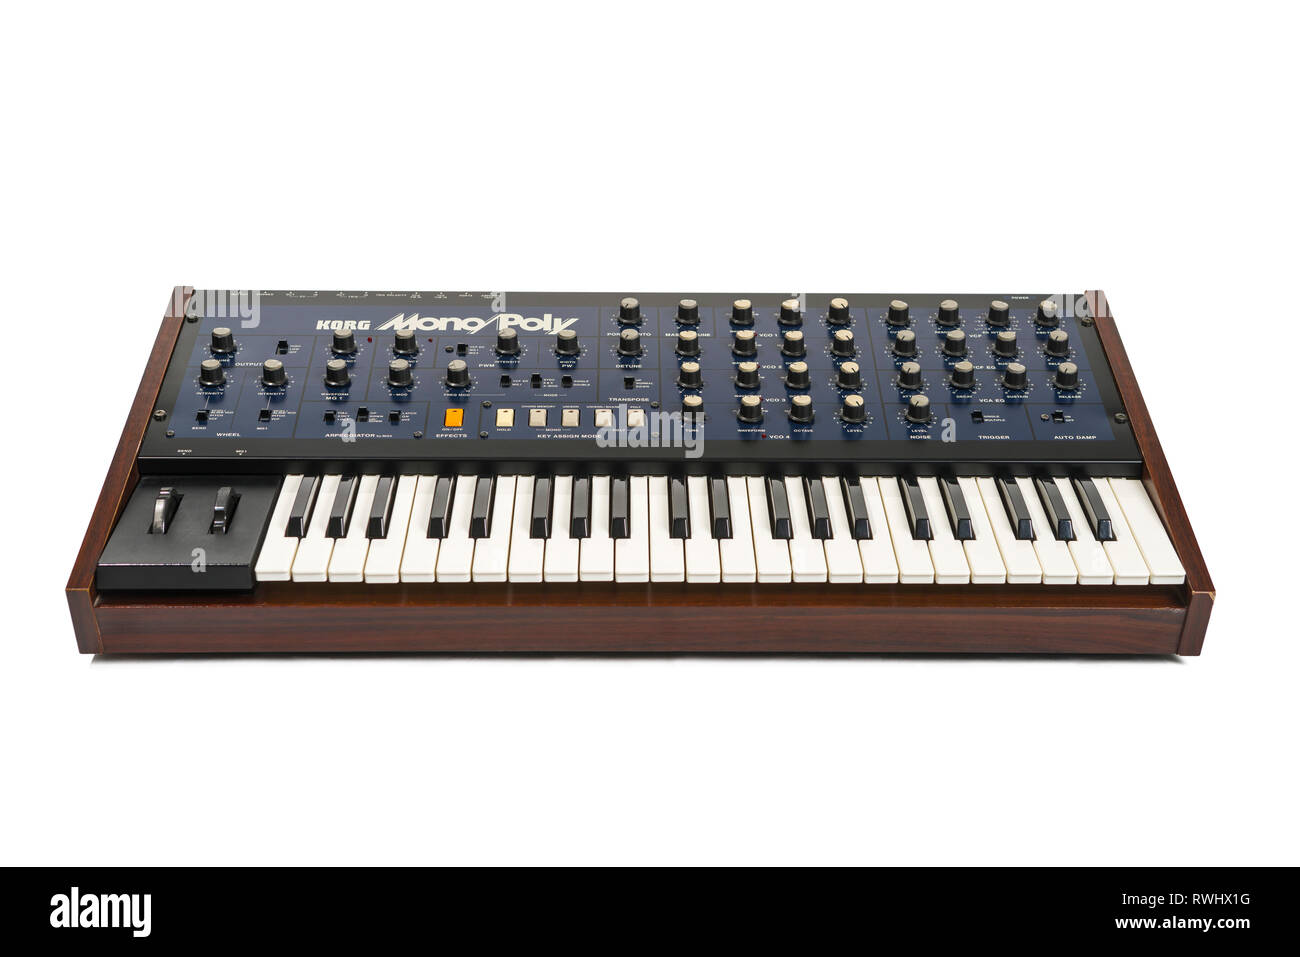 Korg Monopoly vintage analog synthesizer from 1981 and white studio background. - Stock Image